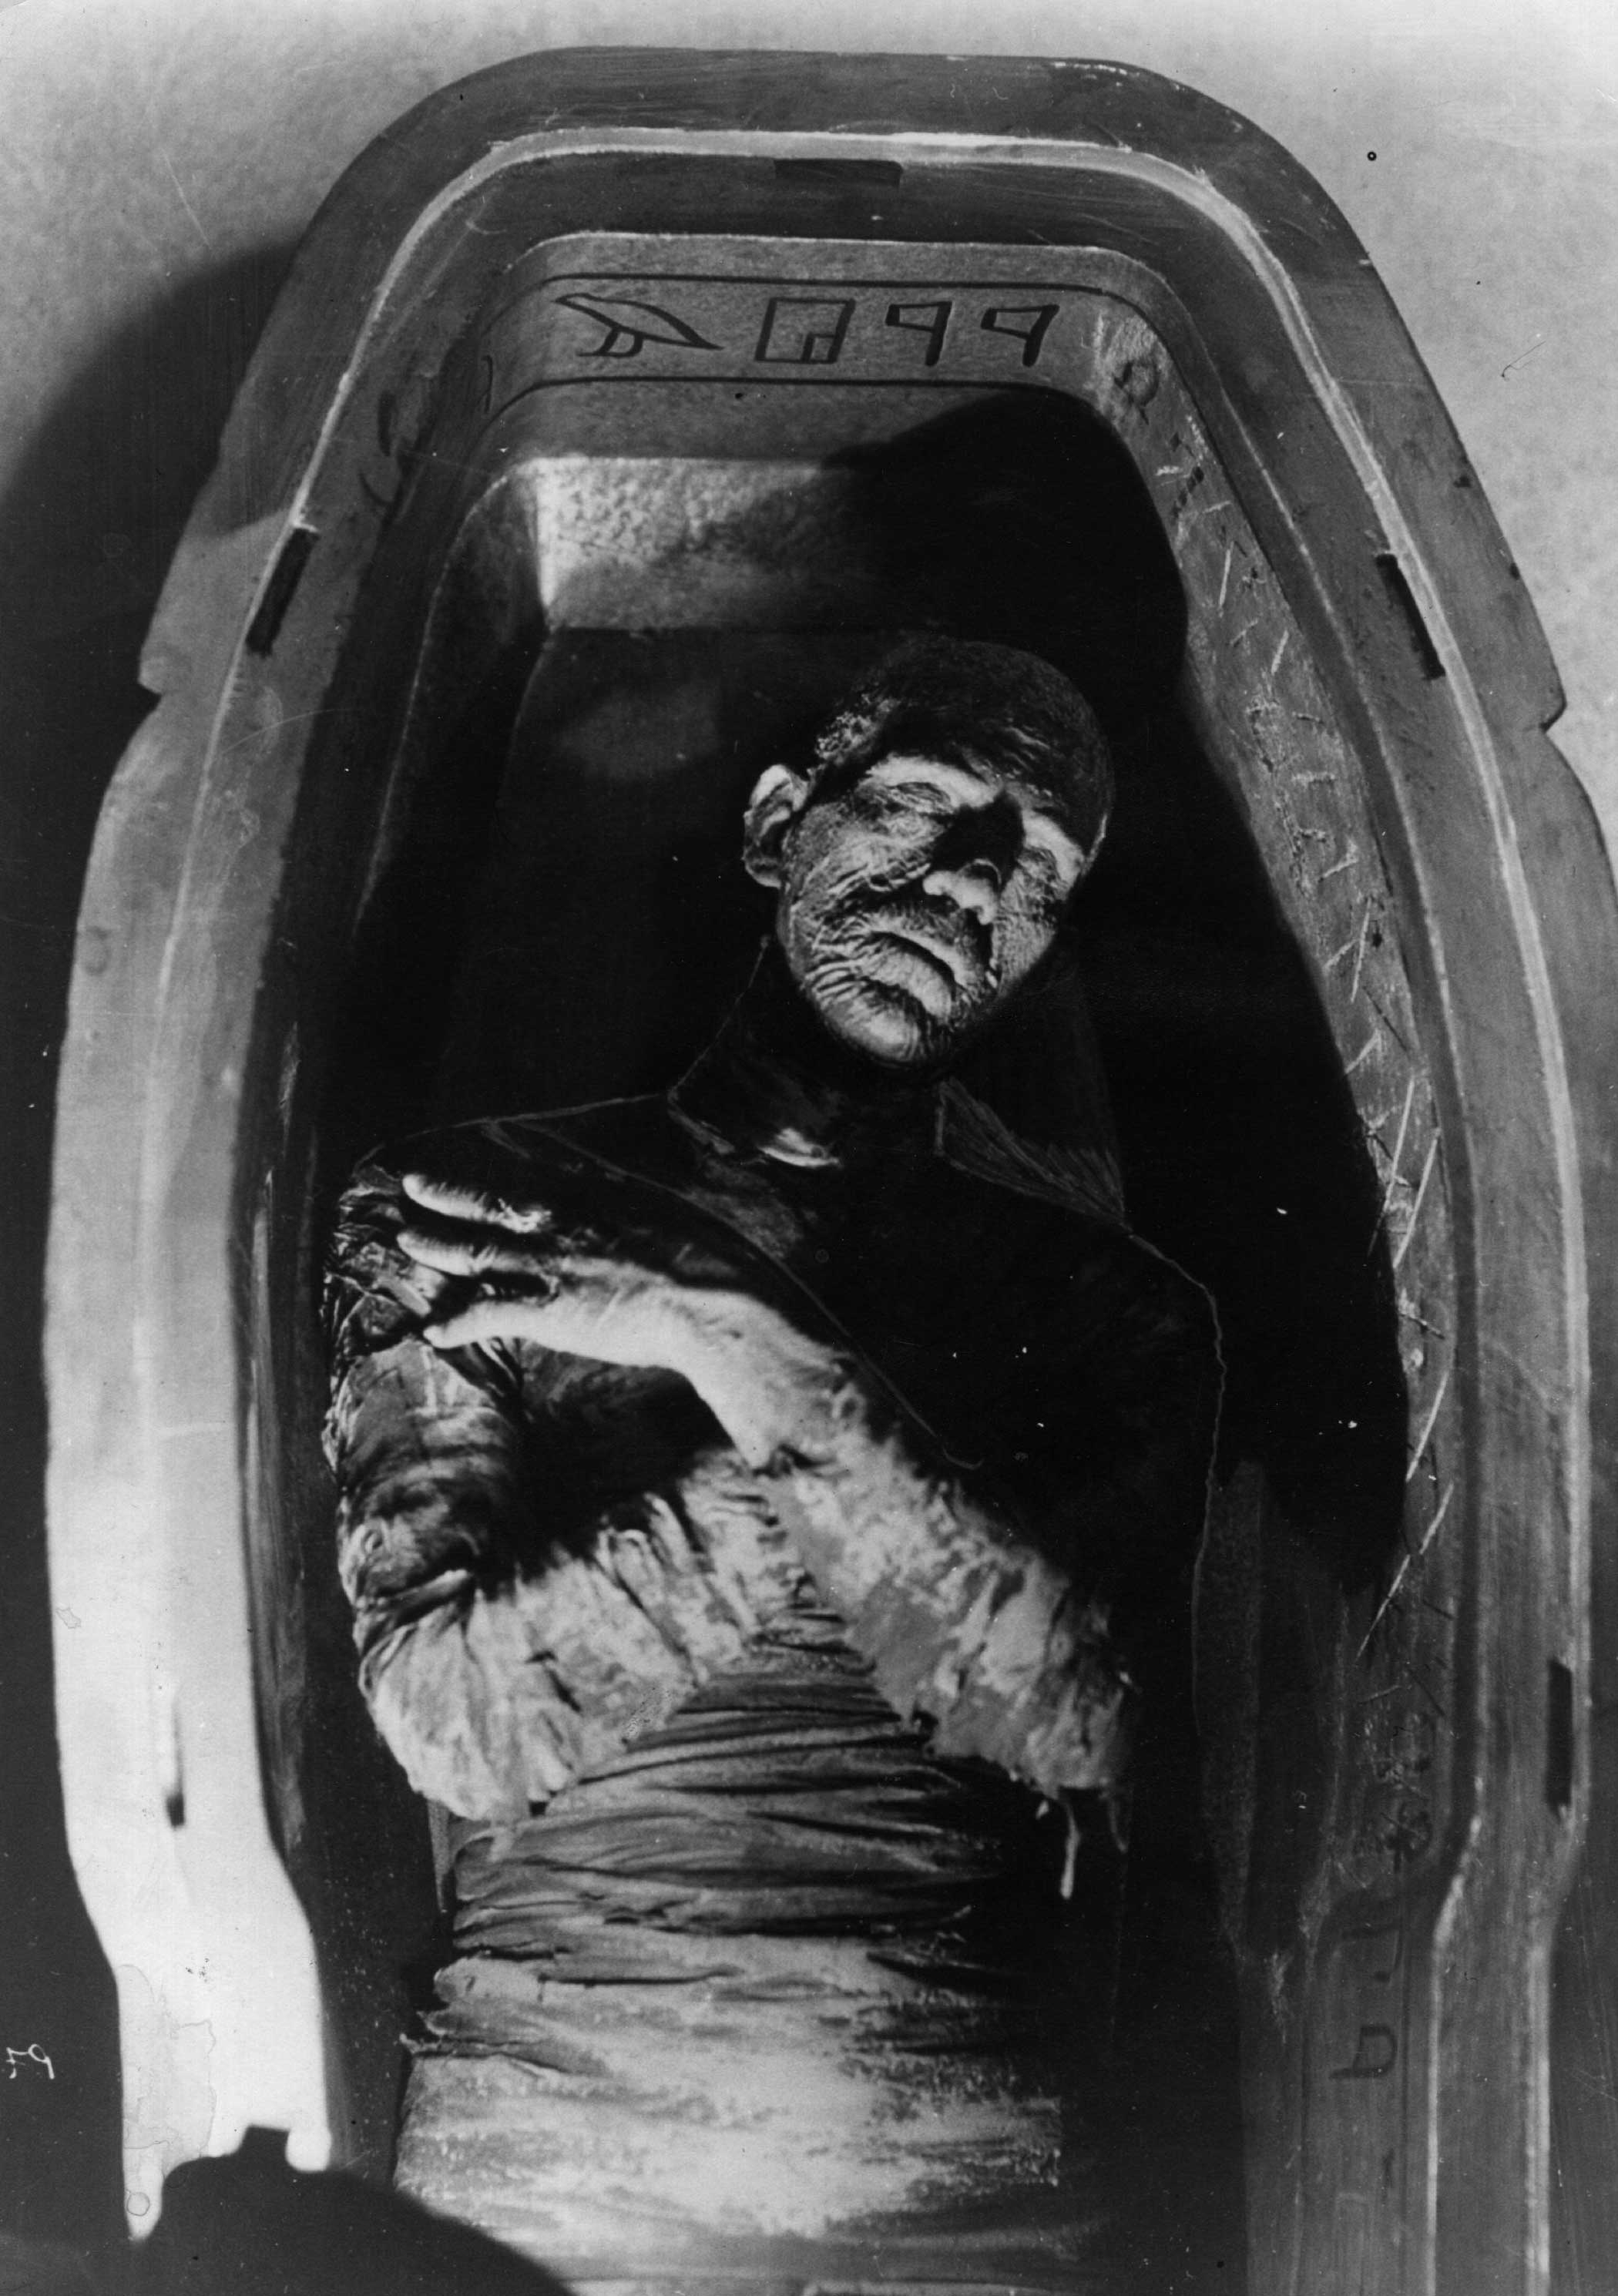 Imhotep from The Mummy, 1932.